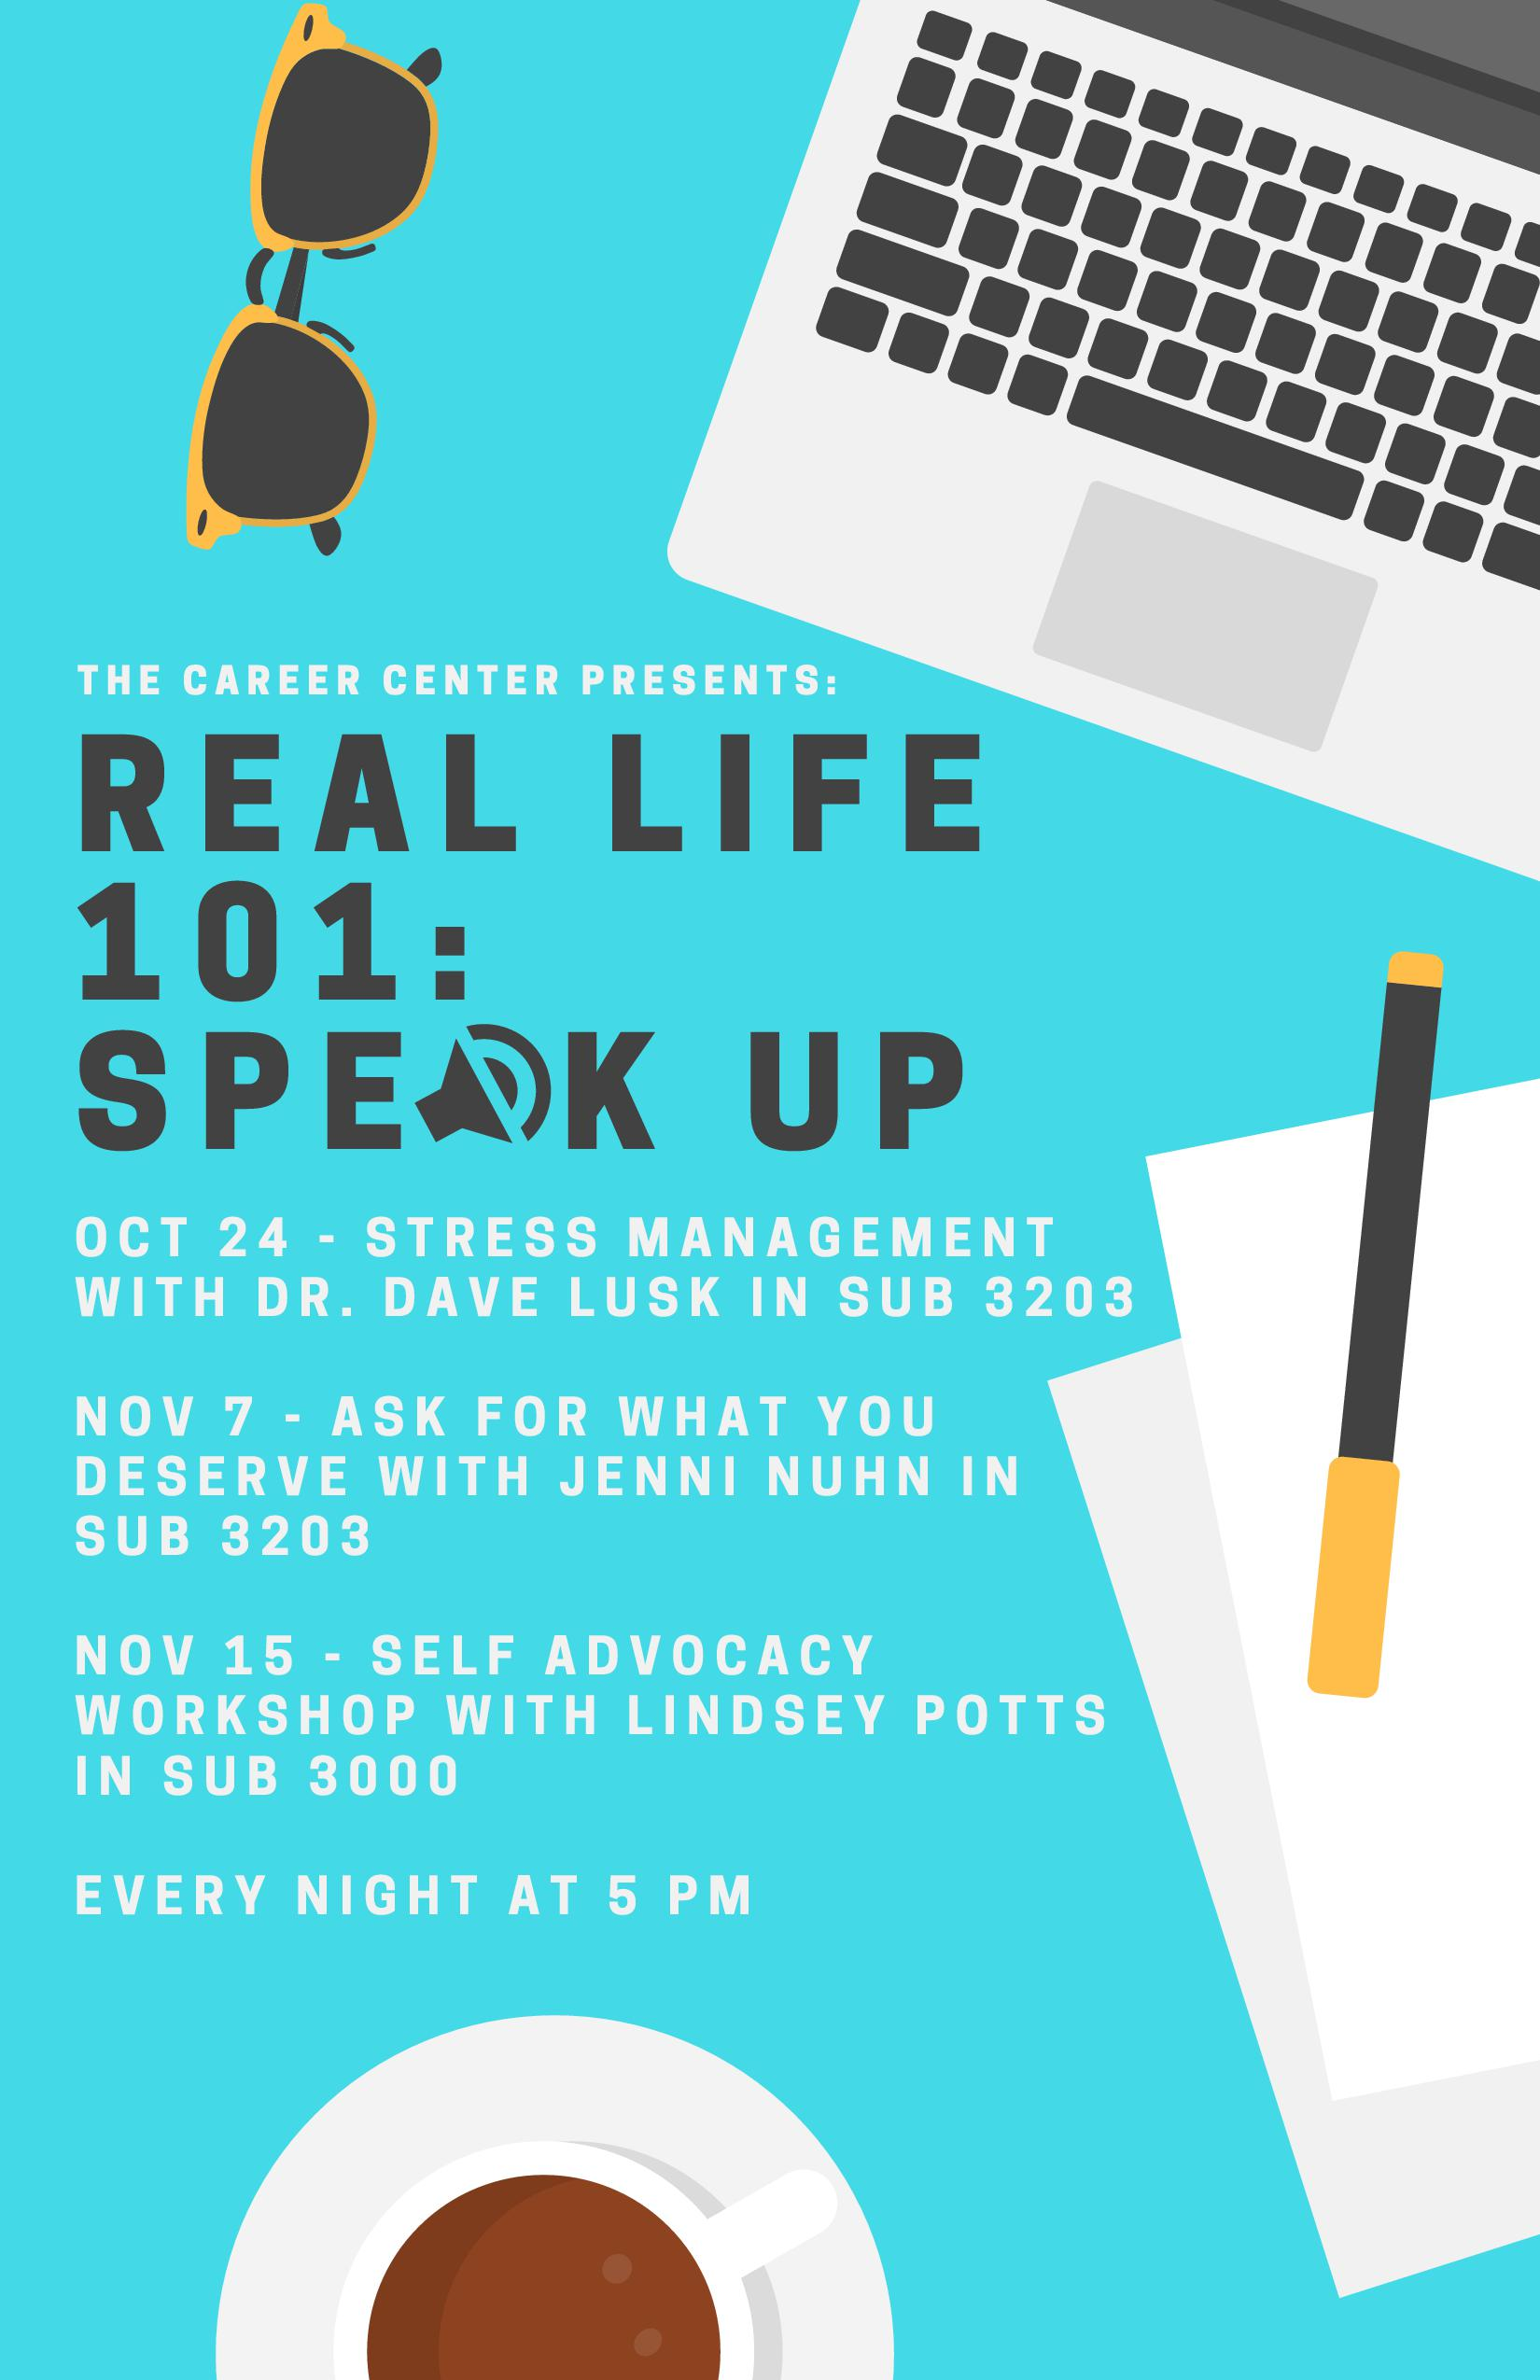 REAL LIFE 101_ SPEAK UP updated poster